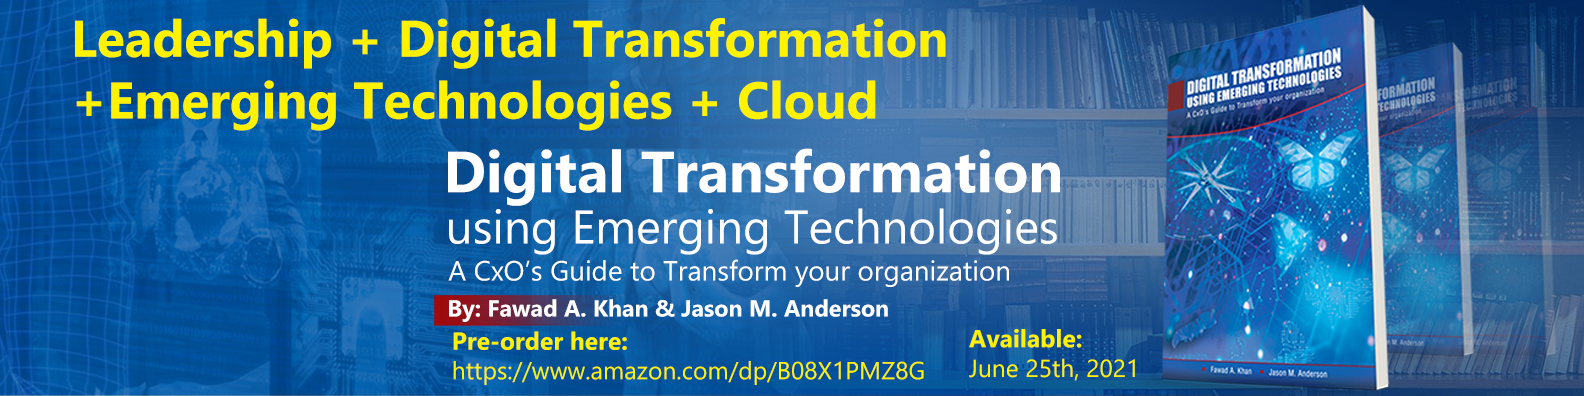 Announcing my book: Digital Transformation using Emerging Technologies: A CxO's guide to transform your organization